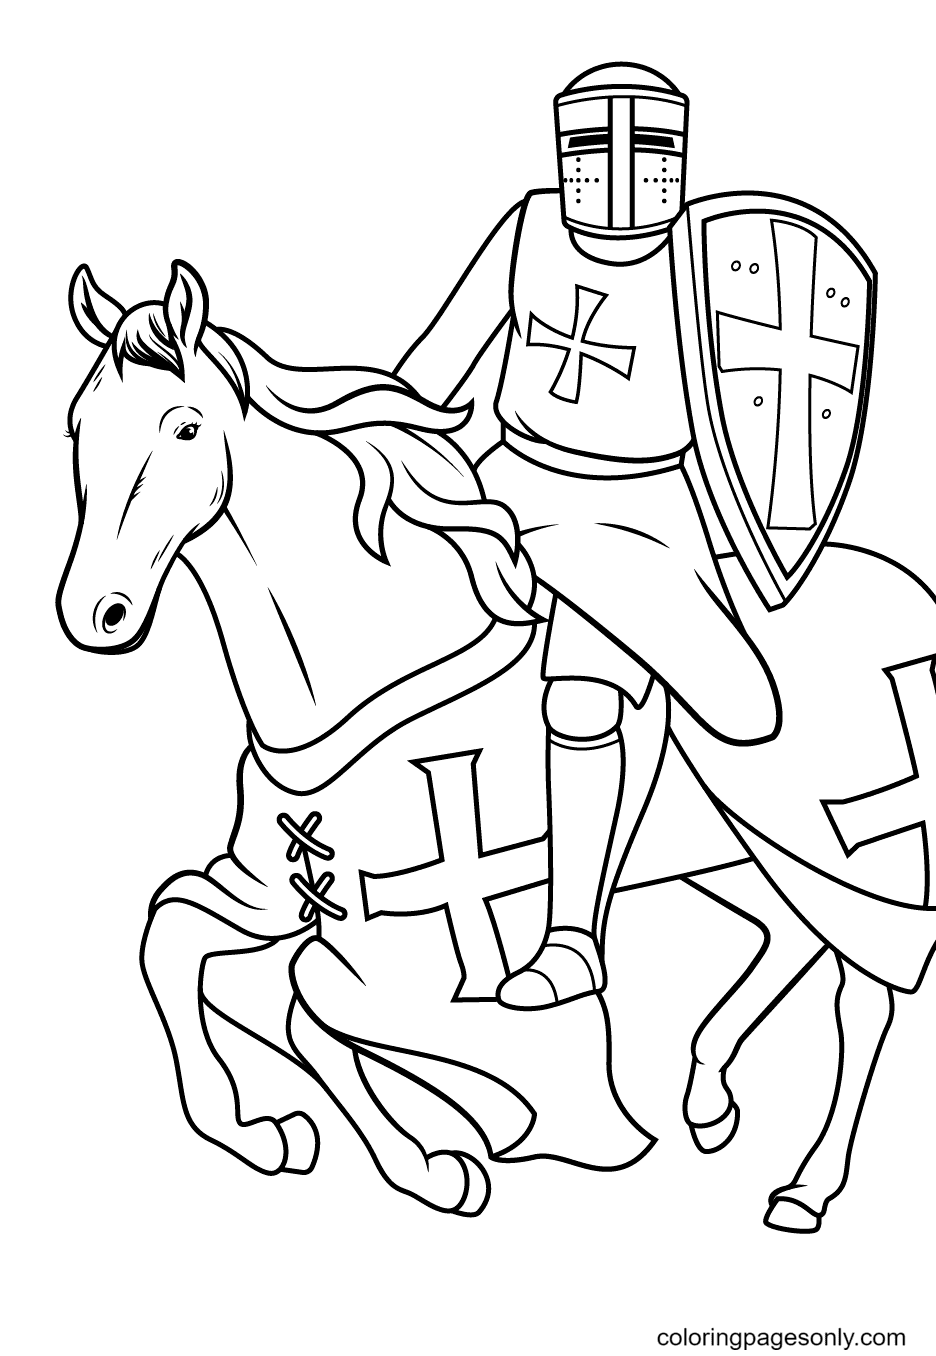 Knight Riding on His Steed Coloring Page